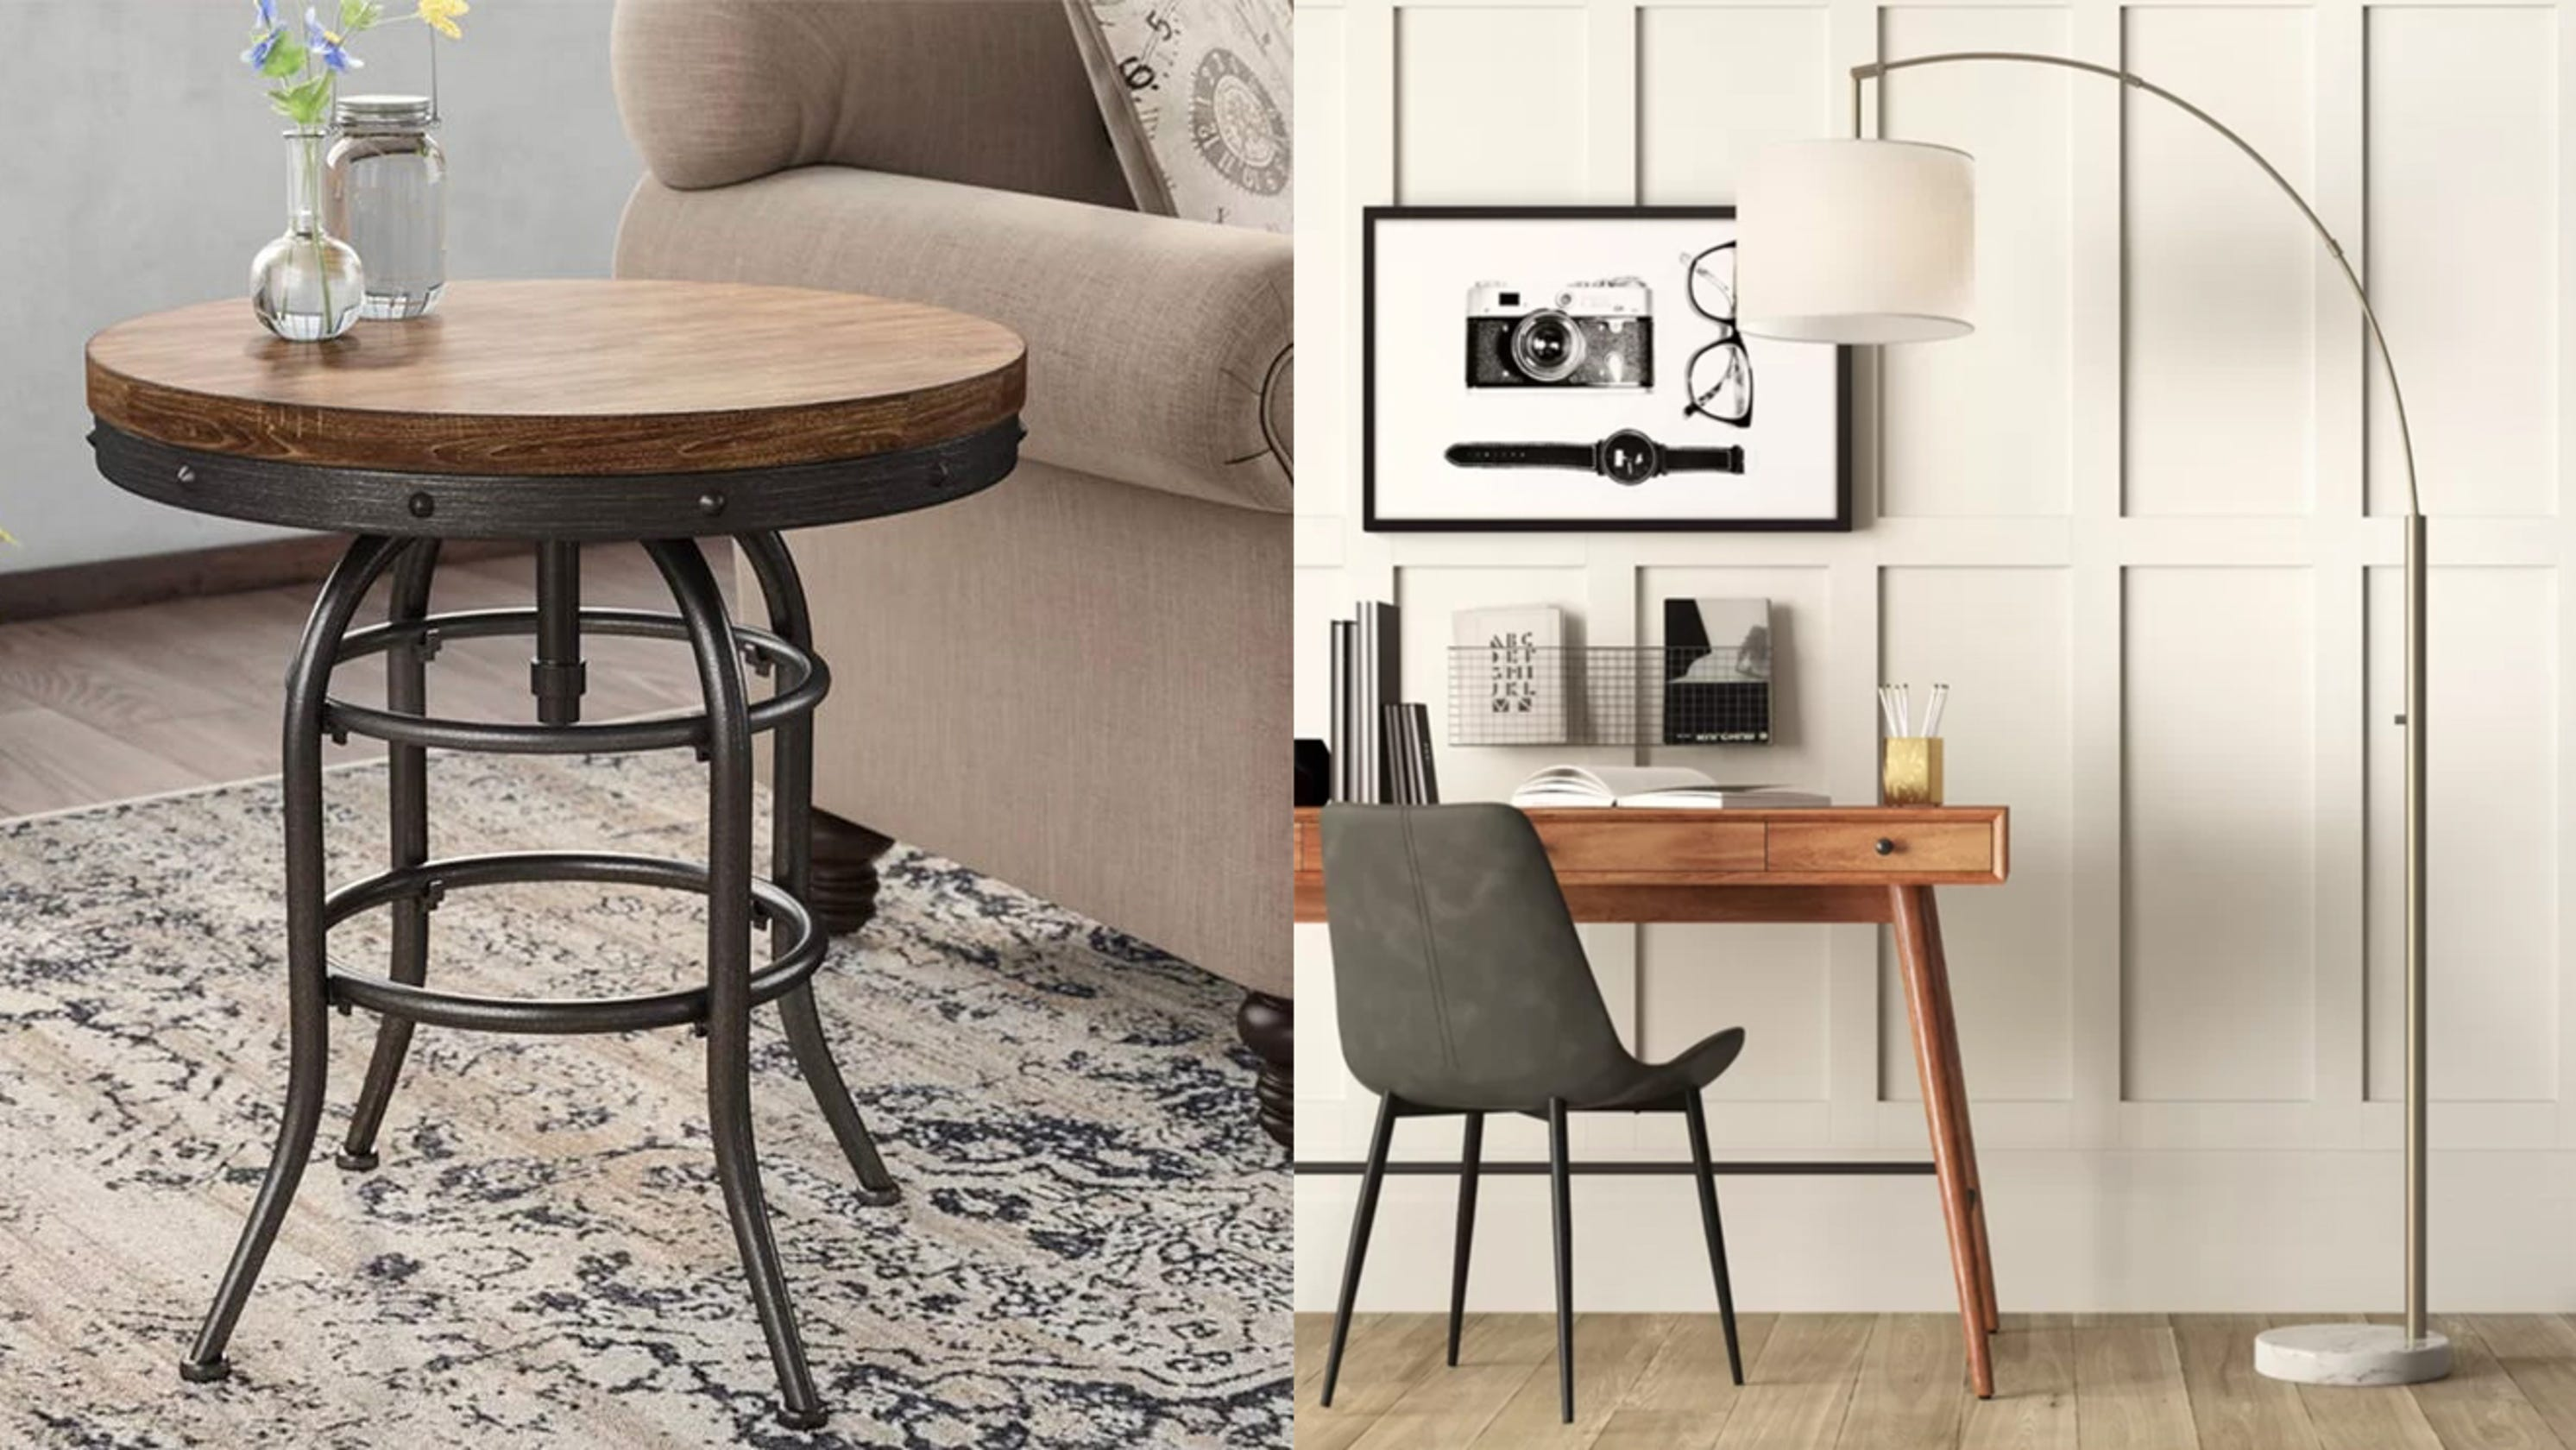 wayfair clearance furniture lamps october popular right table usa today weekend huge deals